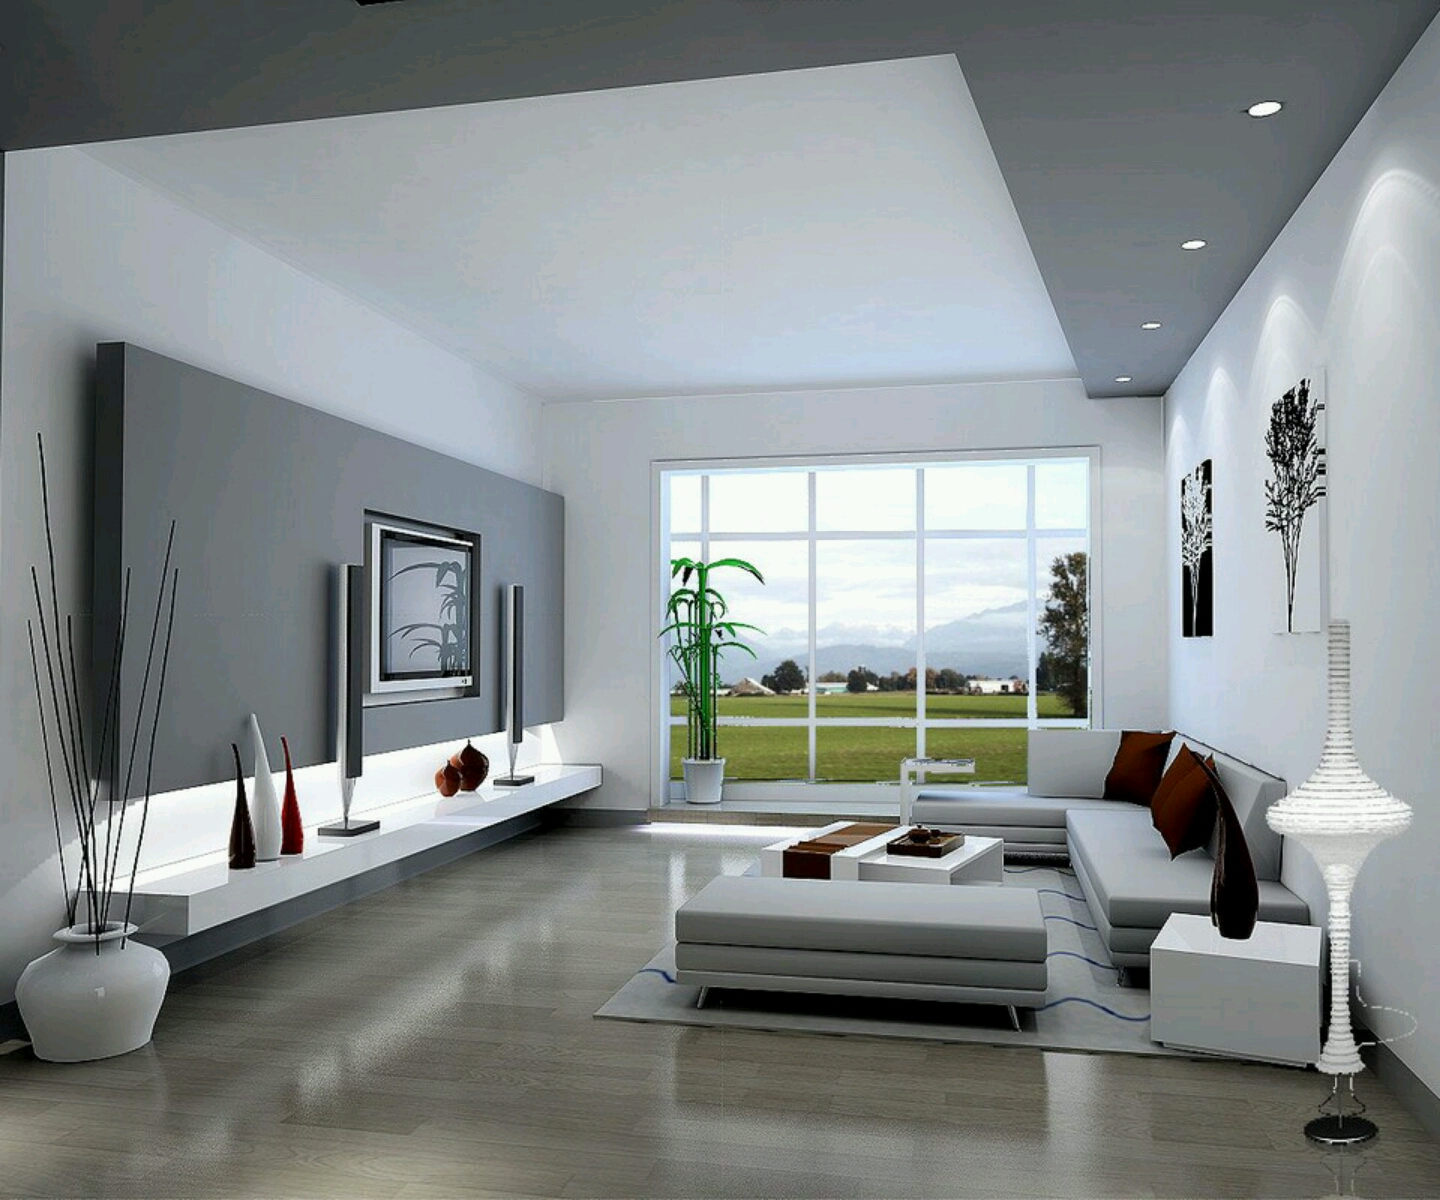 New home designs latest modern living rooms interior Interior sitting room